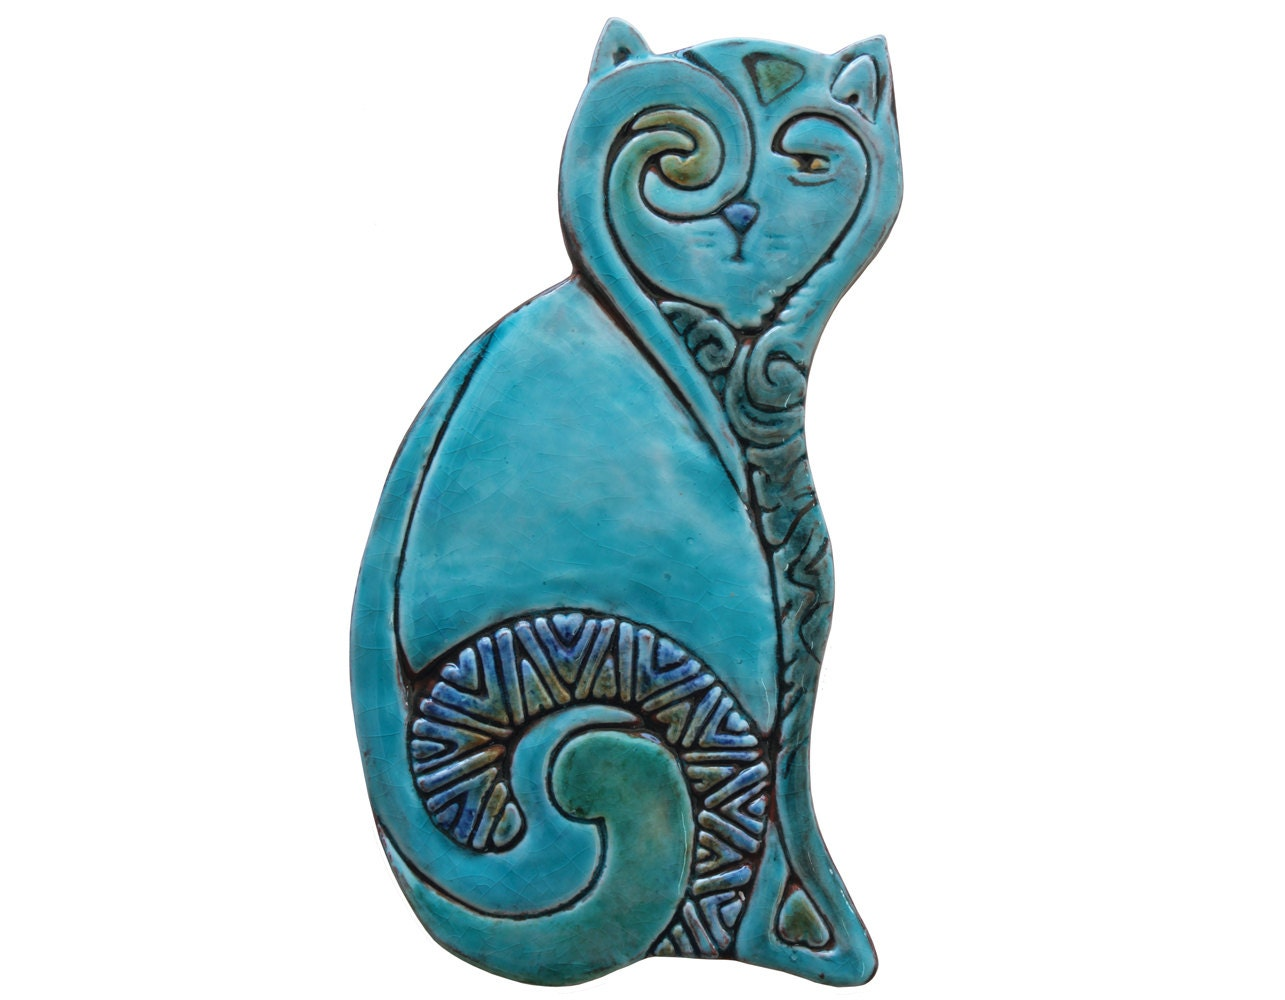 Ceramic cat ceramic tile cat art decorative tiles decorative cat garden decor garden art ceramic tiles amipublicfo Gallery